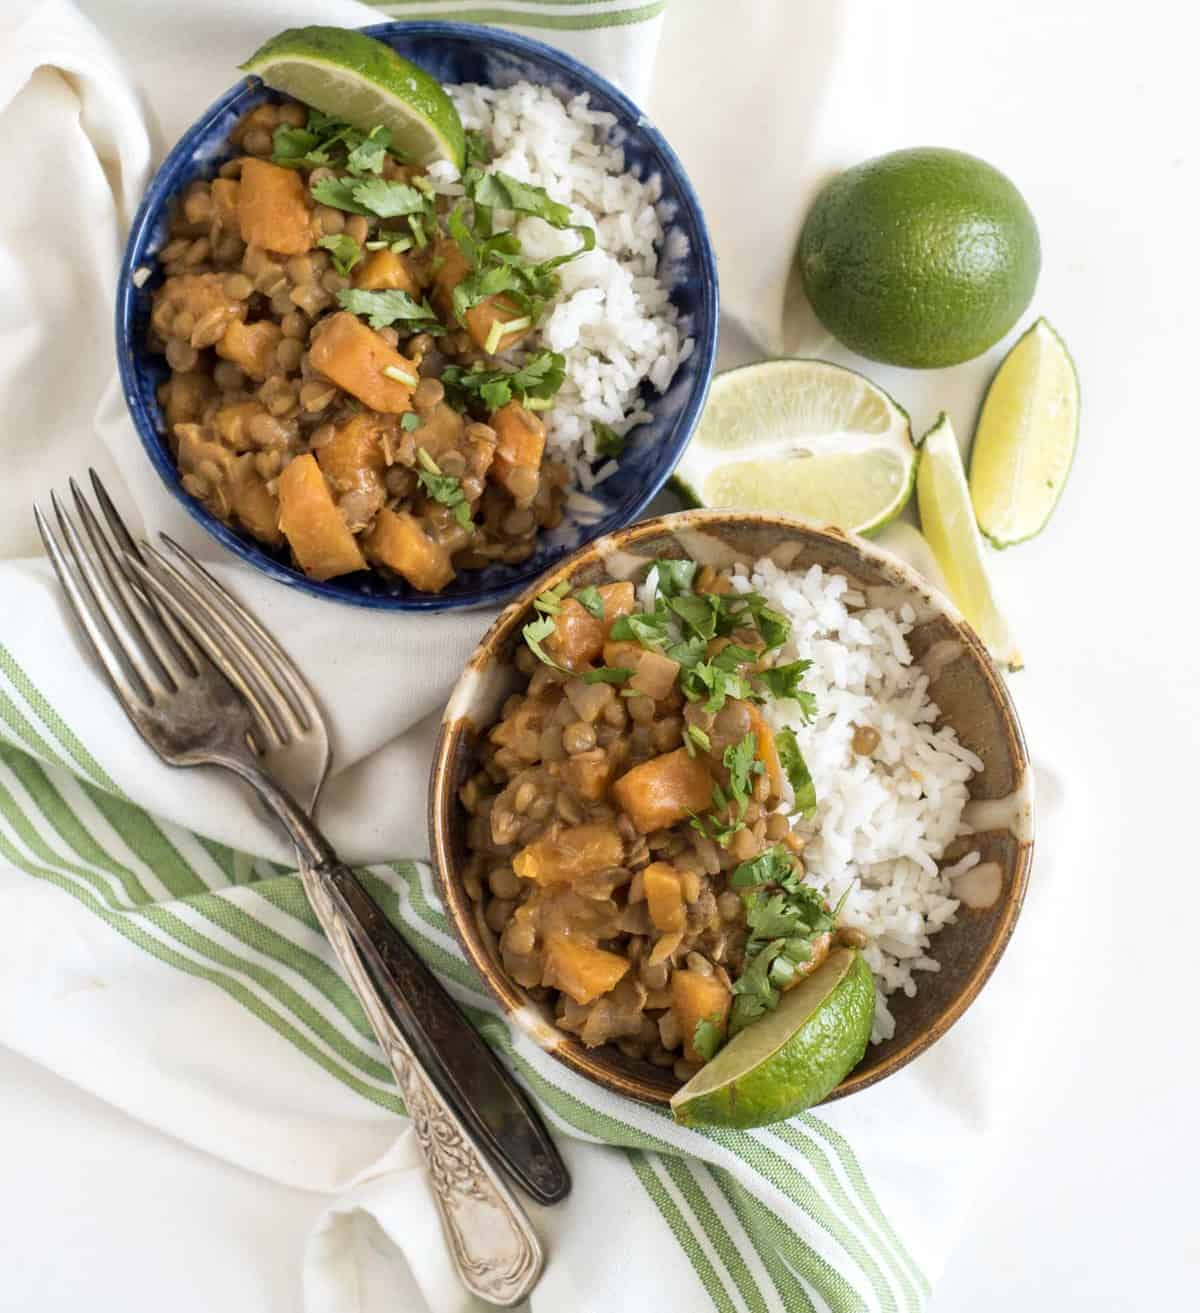 Simple lentil curry made with lentils, butternut squash, and coconut milk makes the perfect healthy plant-based dinner.